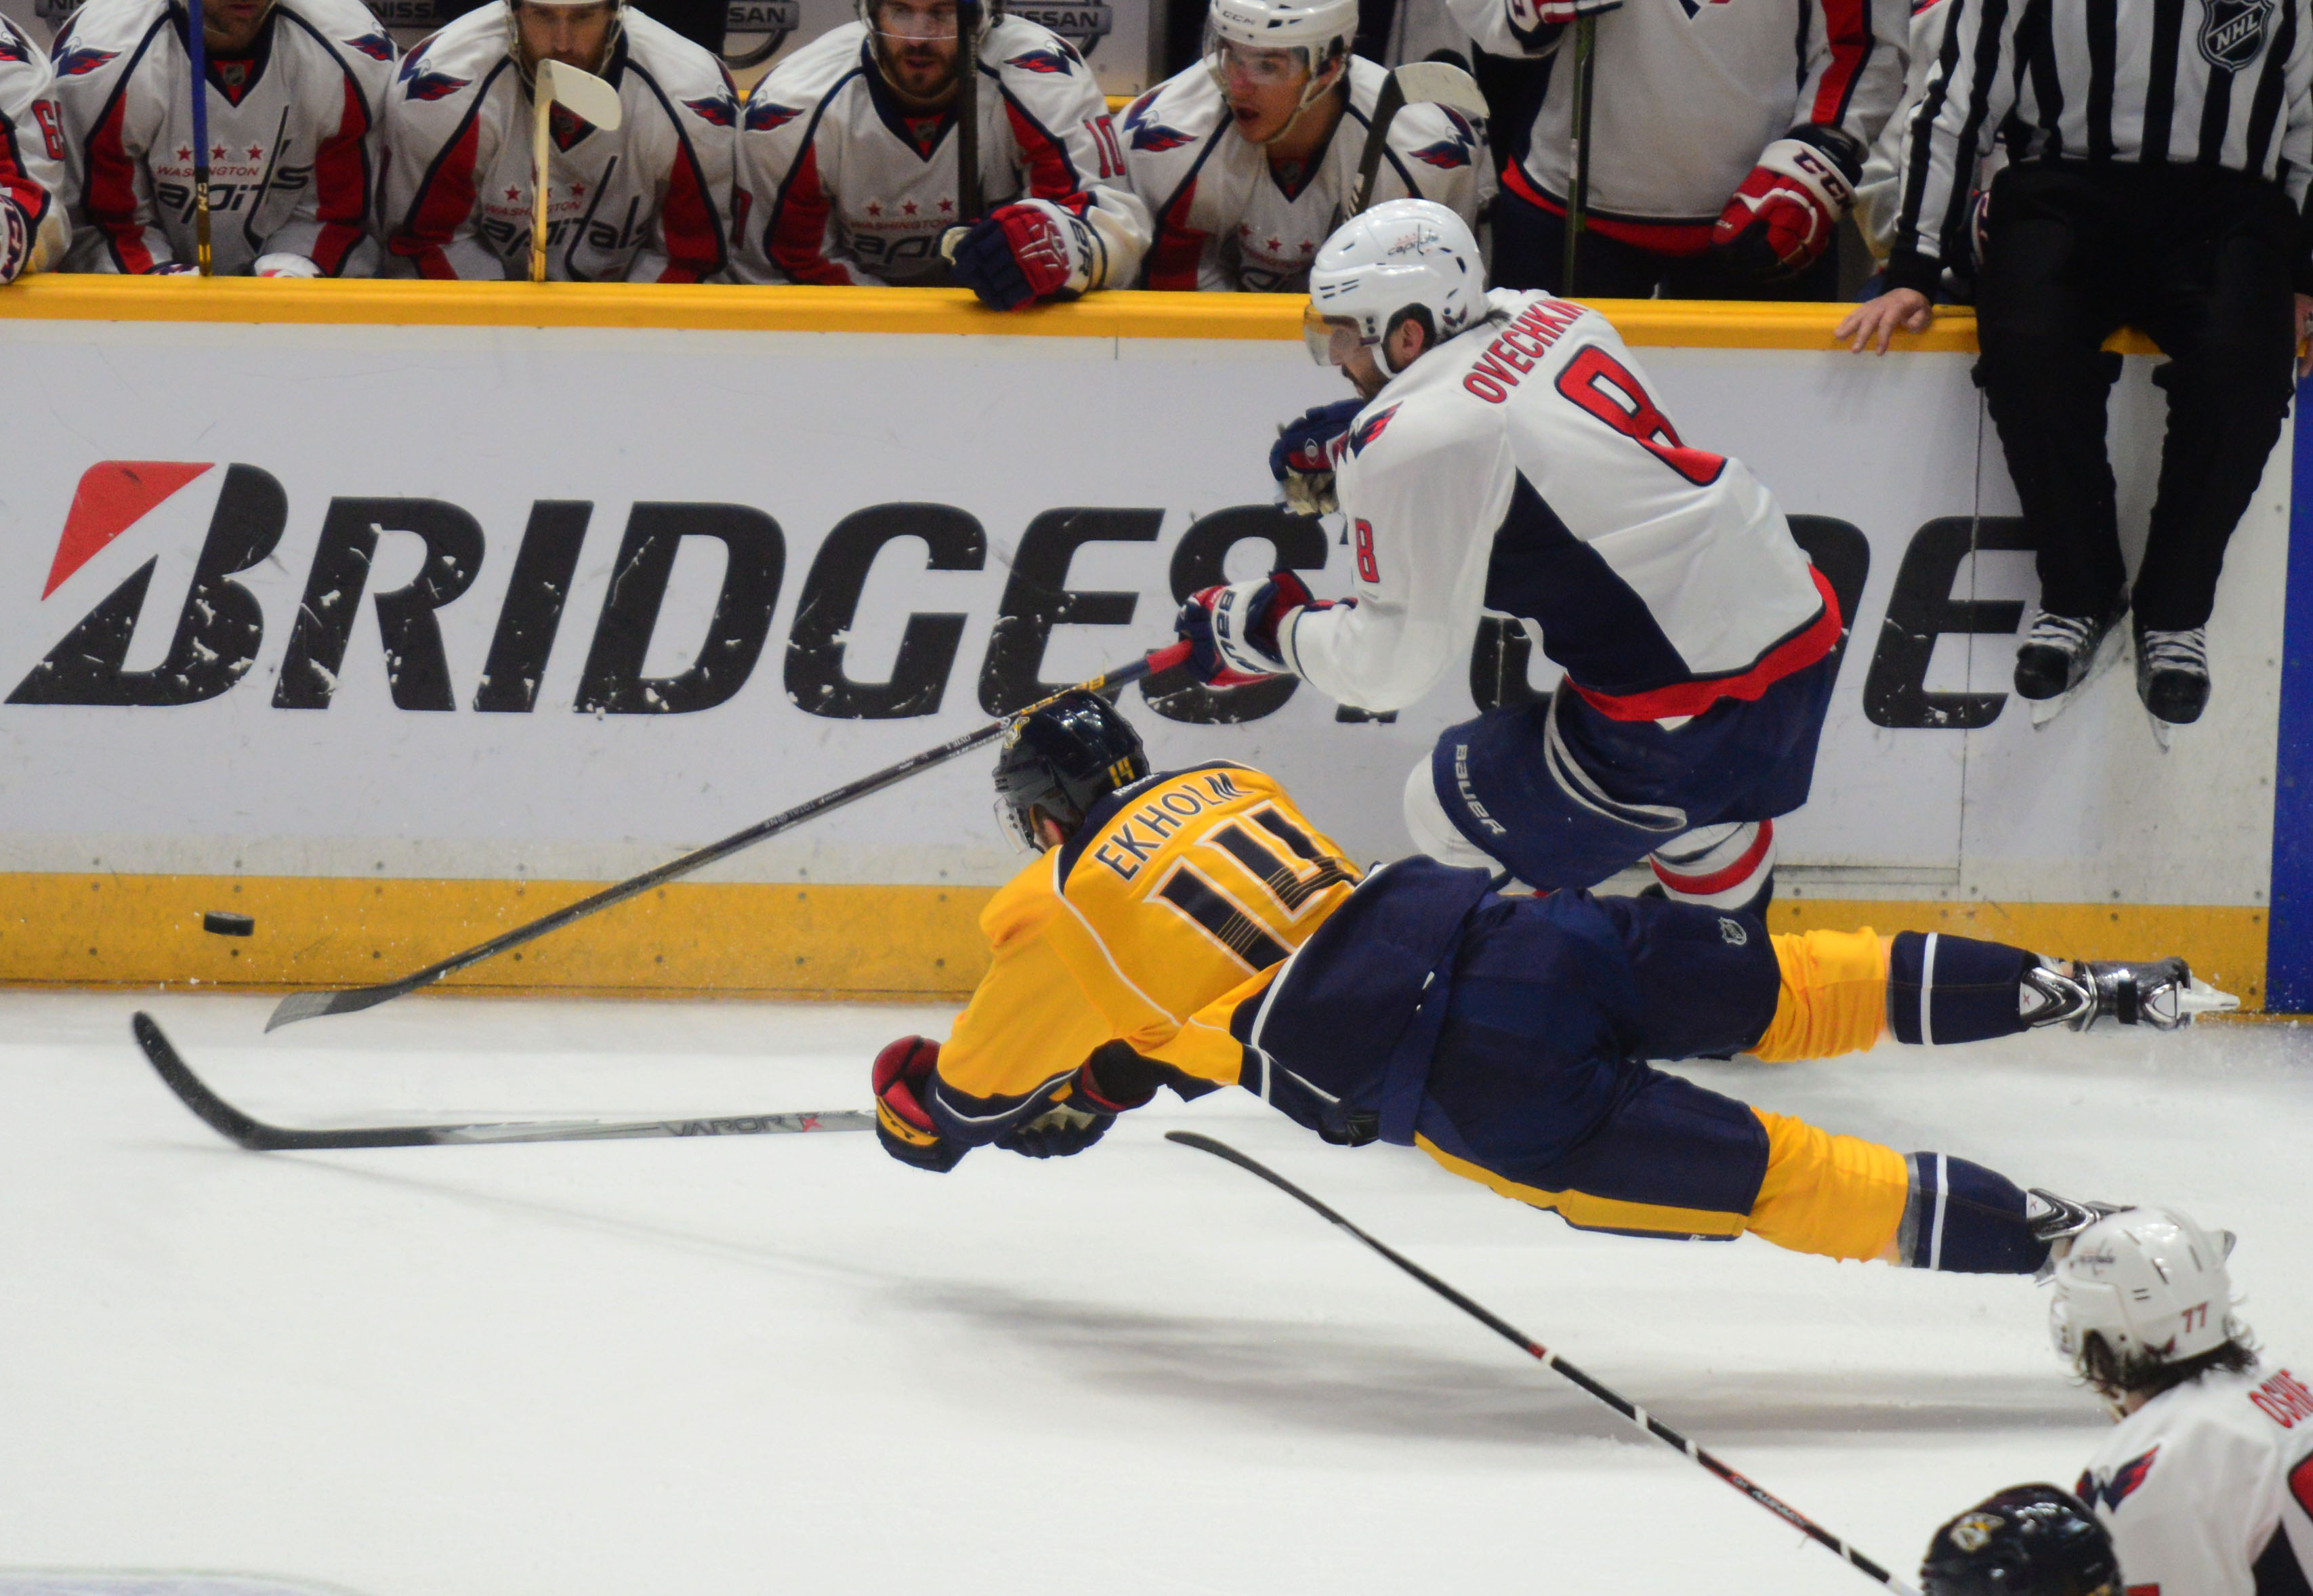 The Predators Mattias Ekholm goes after the Capitals Alex Ovechkin - Photo by Mike Strasinger